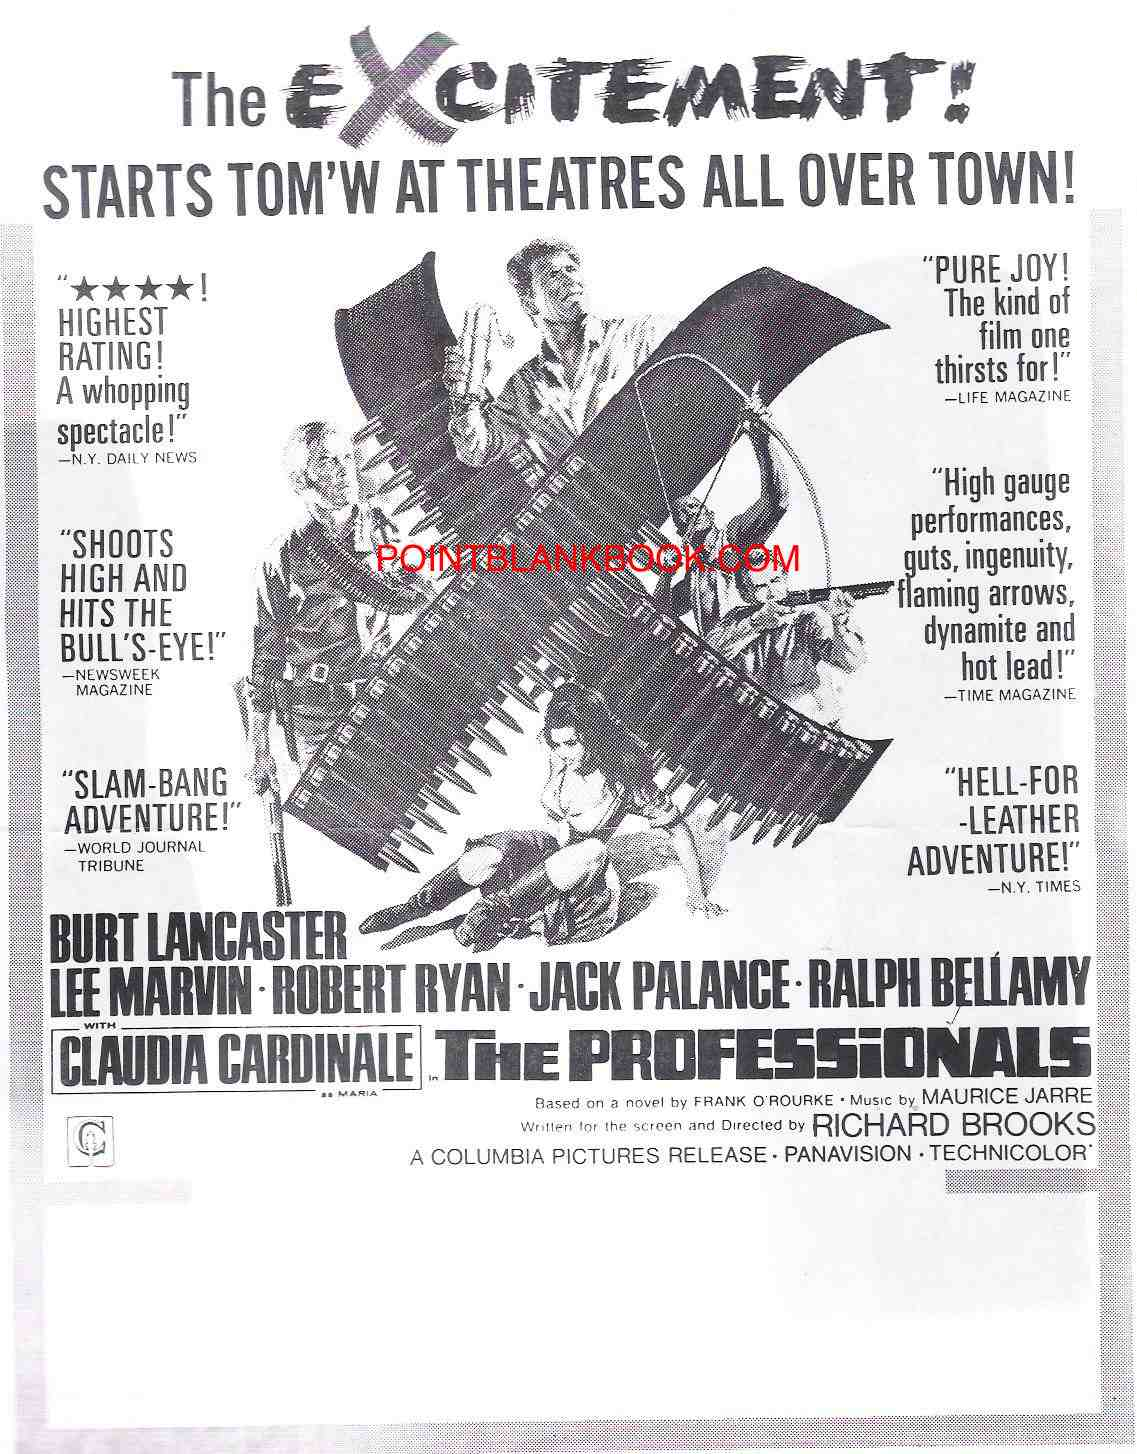 Original print ad from the film's pressbook highlighting the film's critical response.